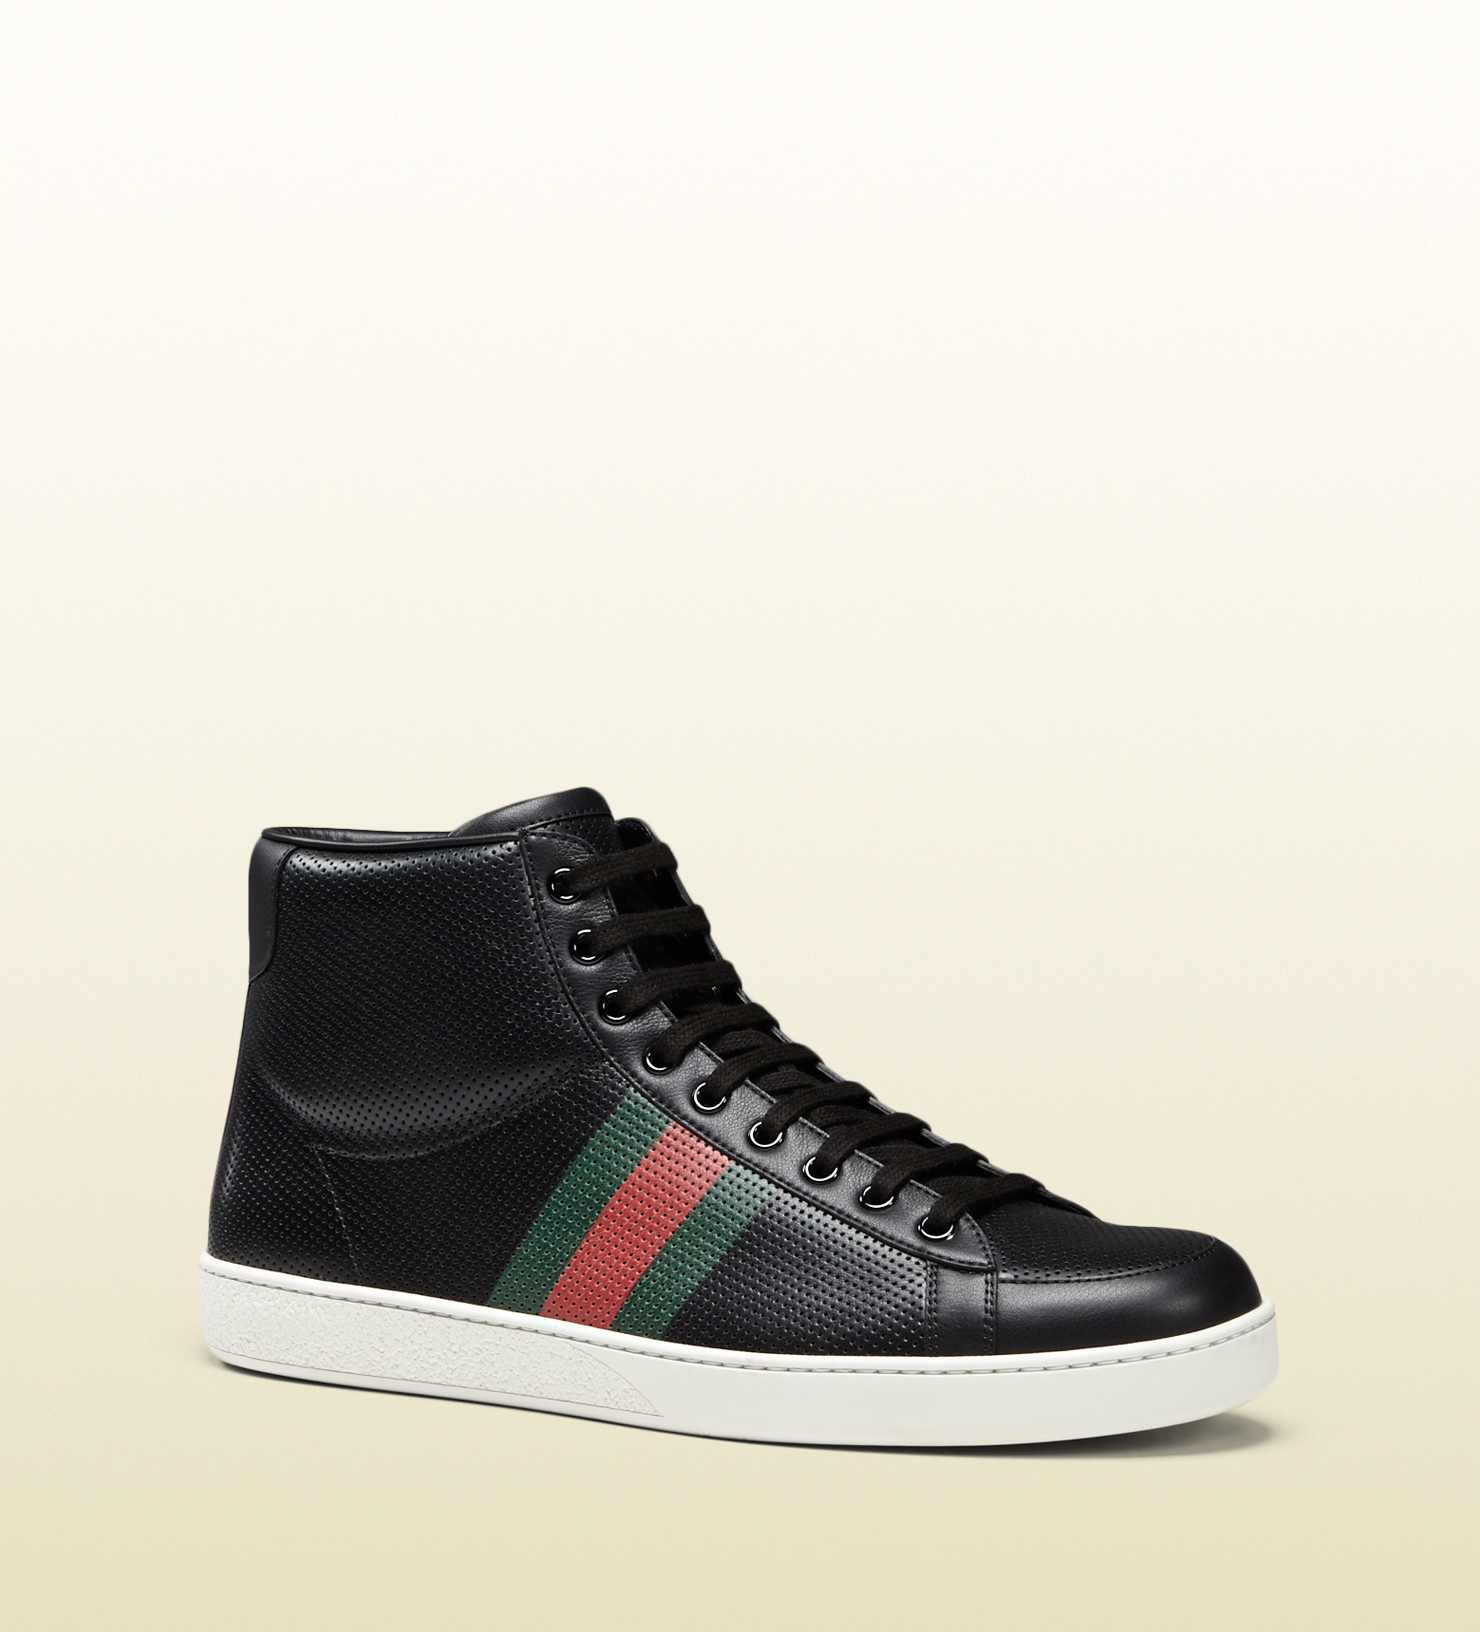 d8aa95609 Gucci Perforated Leather High-top Sneaker in Black for Men - Lyst